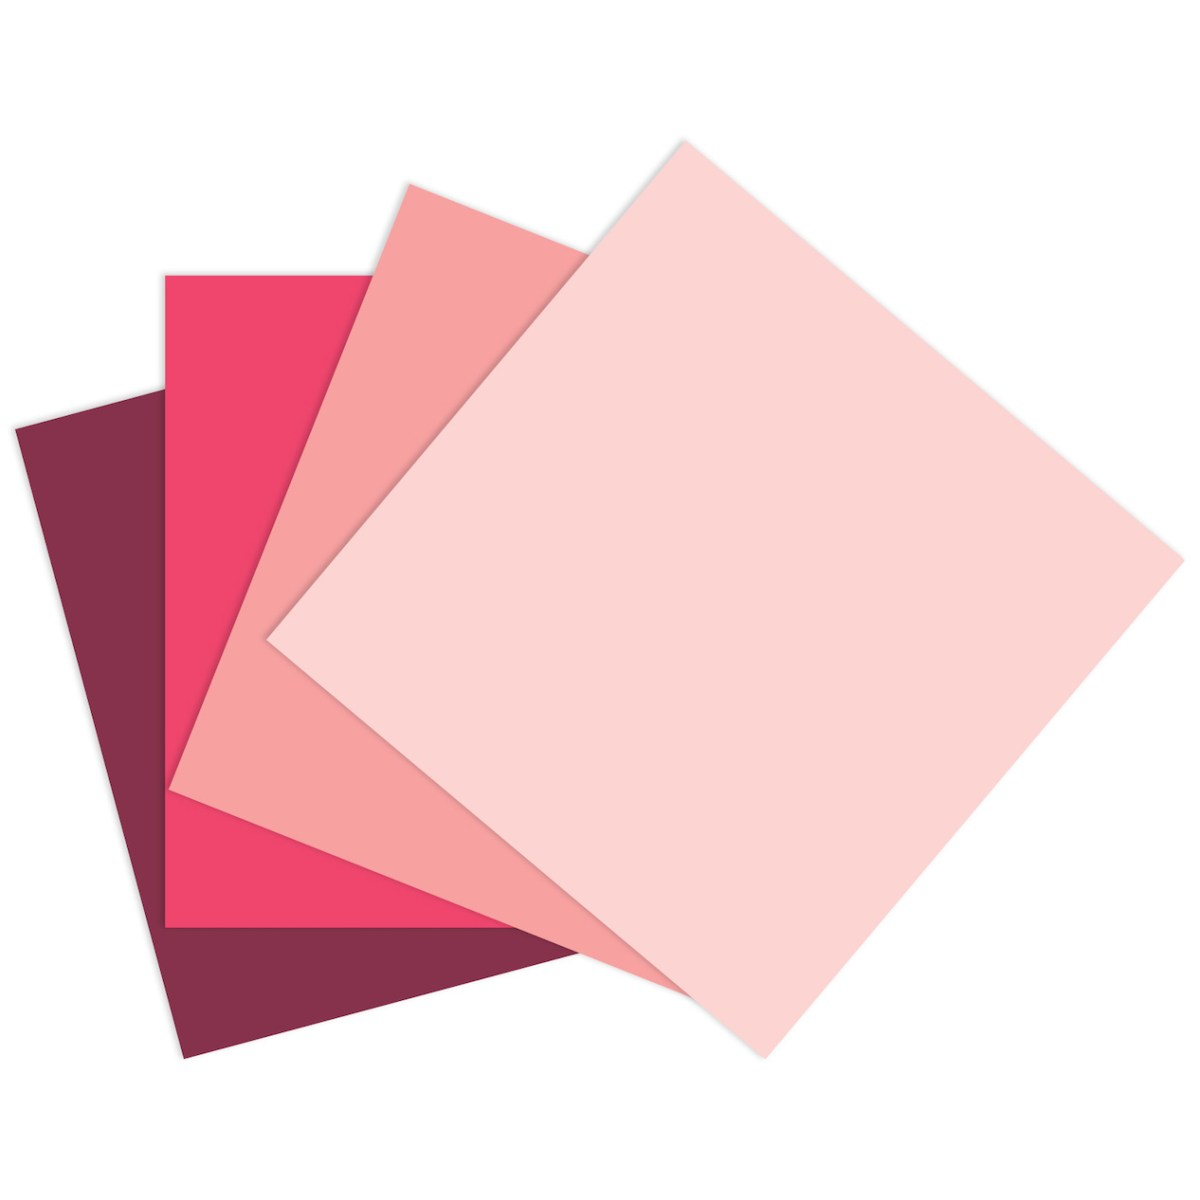 Cardstock Carnival #closetomyheart #ctmh #ctmhcardstockcarnival #cardstockcarnival #exclusivecolorpalette #exclusivecolourpalette #scrapbooking #cardmaking #papercrafting #memorykeeping